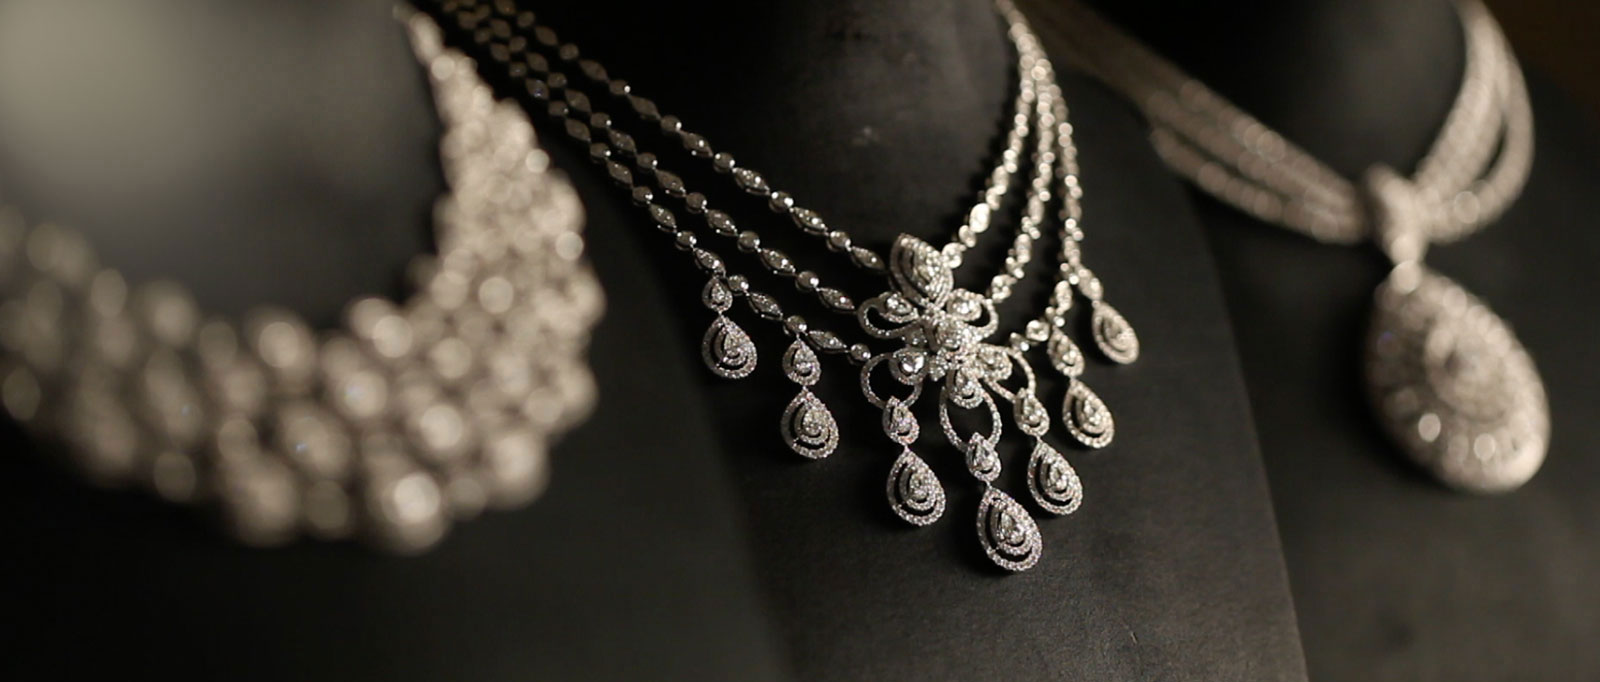 Whole Designer Fashion Jewellery In China De Beers Sight Holders India Hong Kong